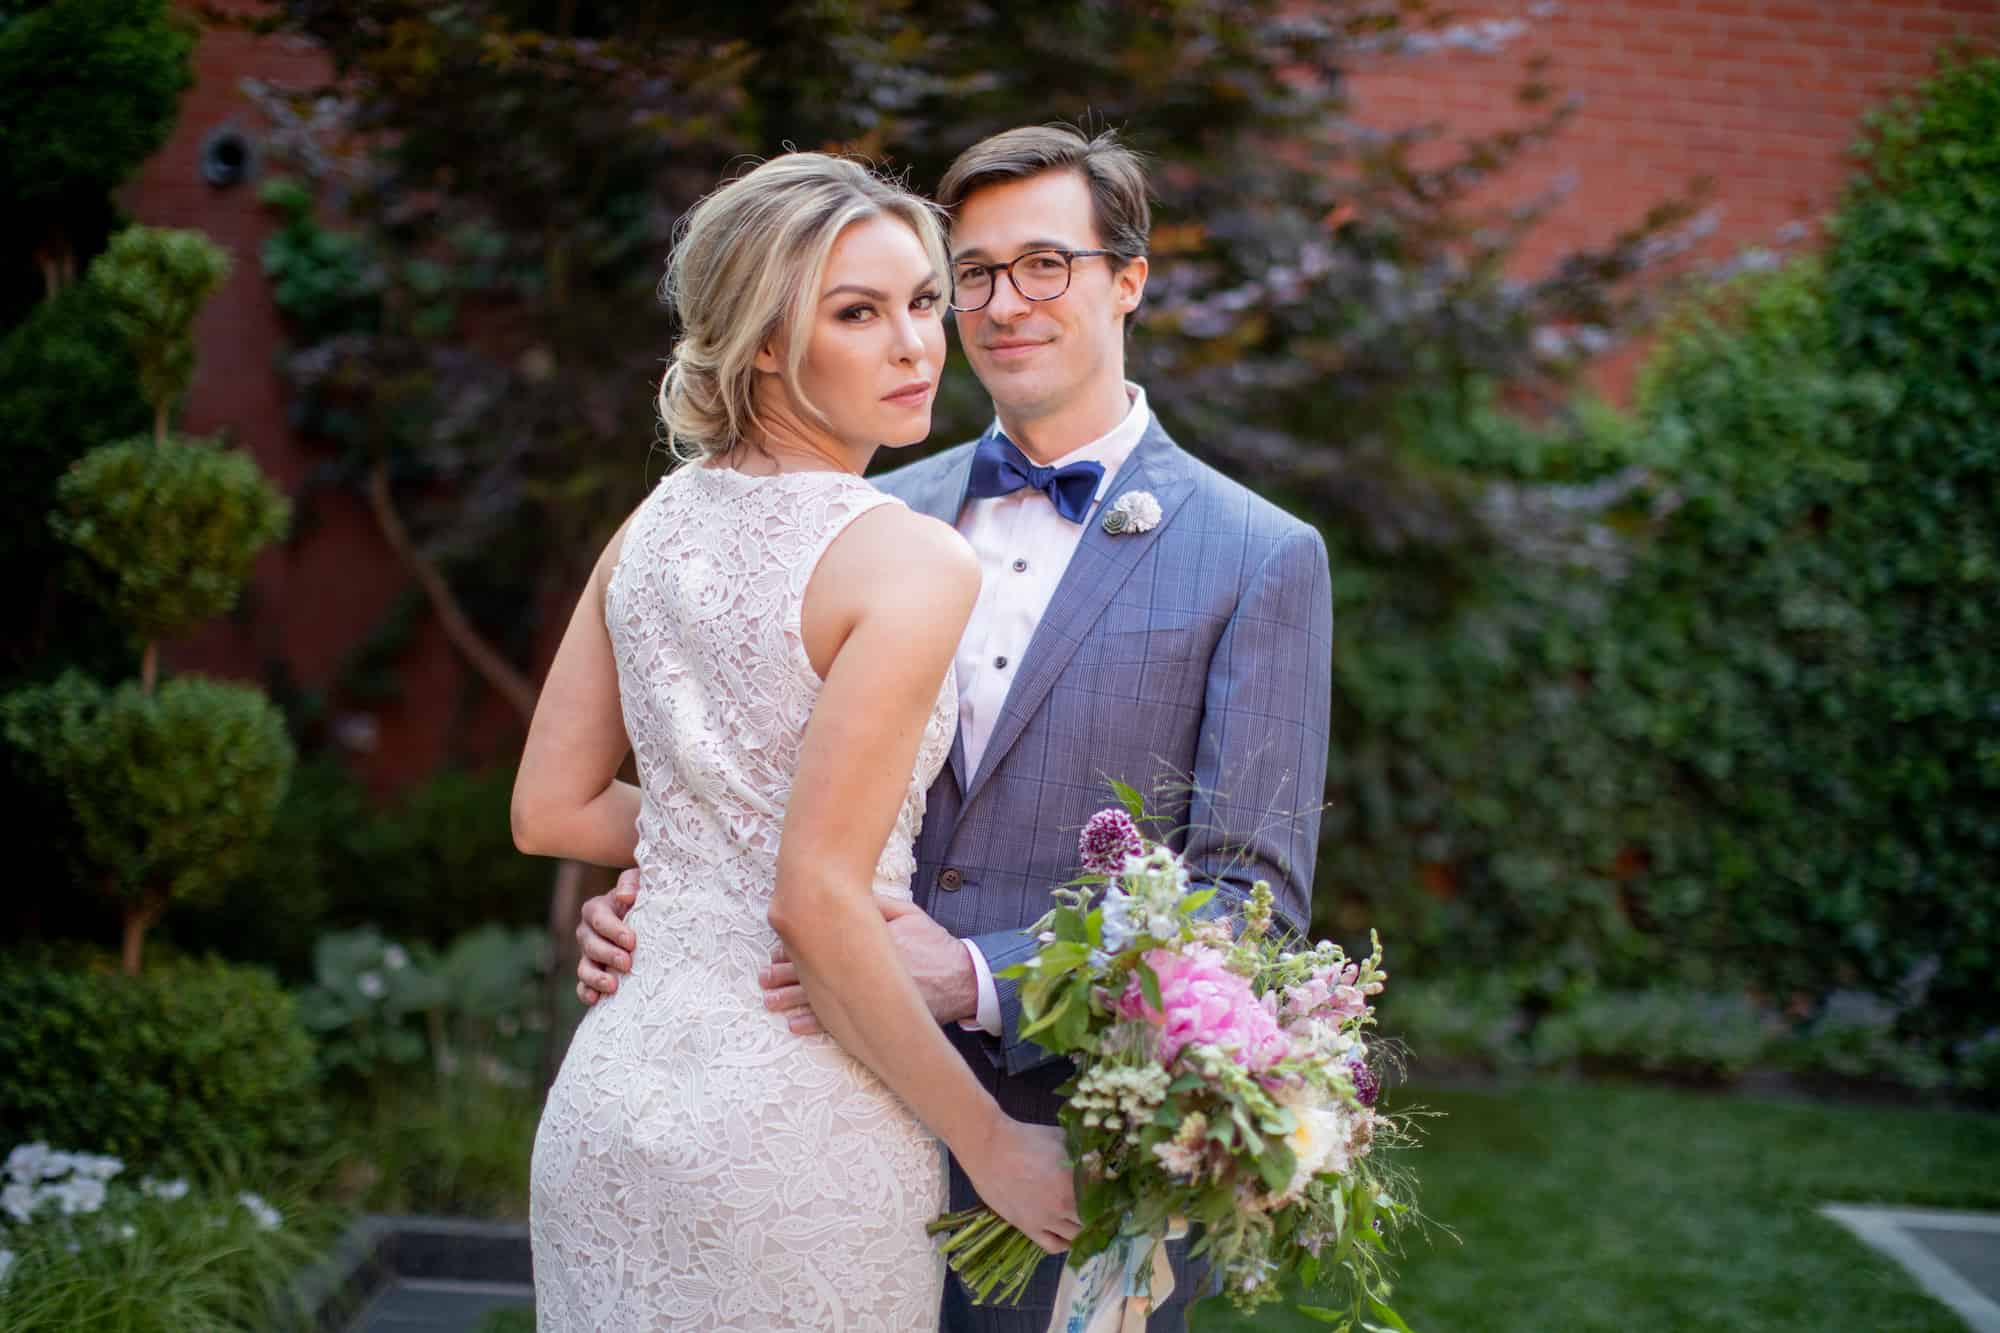 Groom and bride with bouquet standing in ivy courtyard